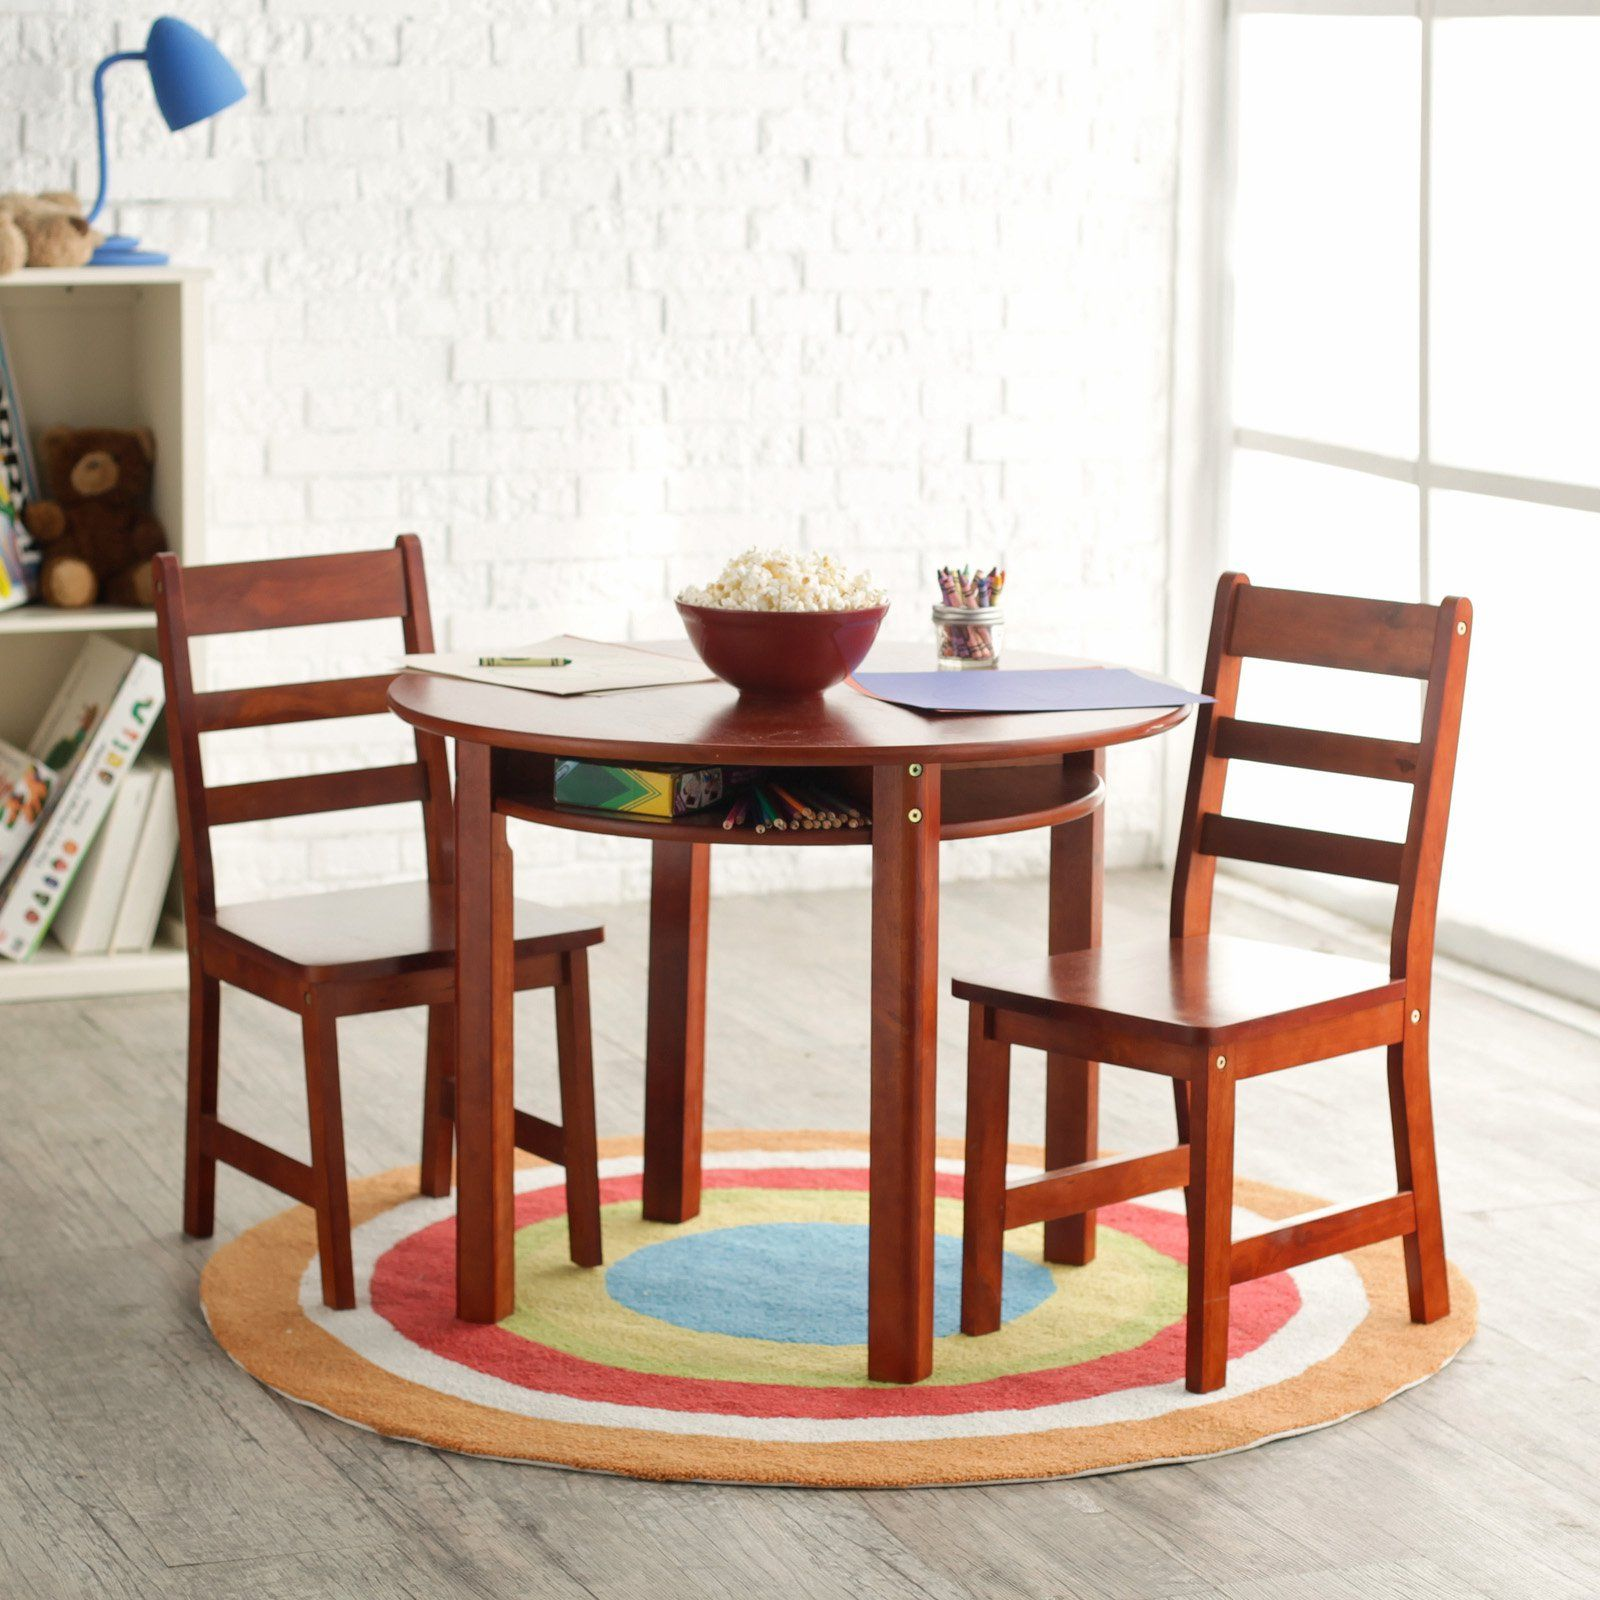 chair s to click set chairs furniture furnitures ikea decorating and toddler niqoiplc sets children naya enlarge the table